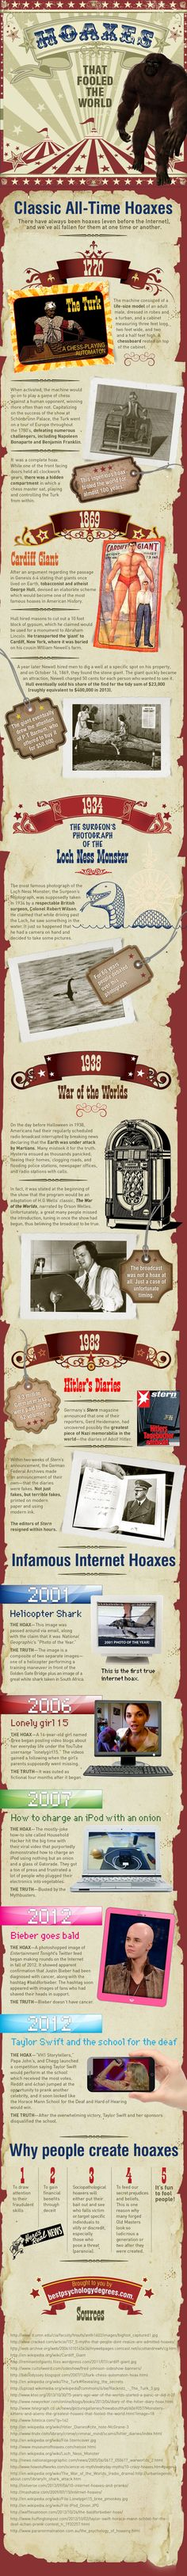 Hoaxes That Fooled The World #Infographics — Lightscap3s.com